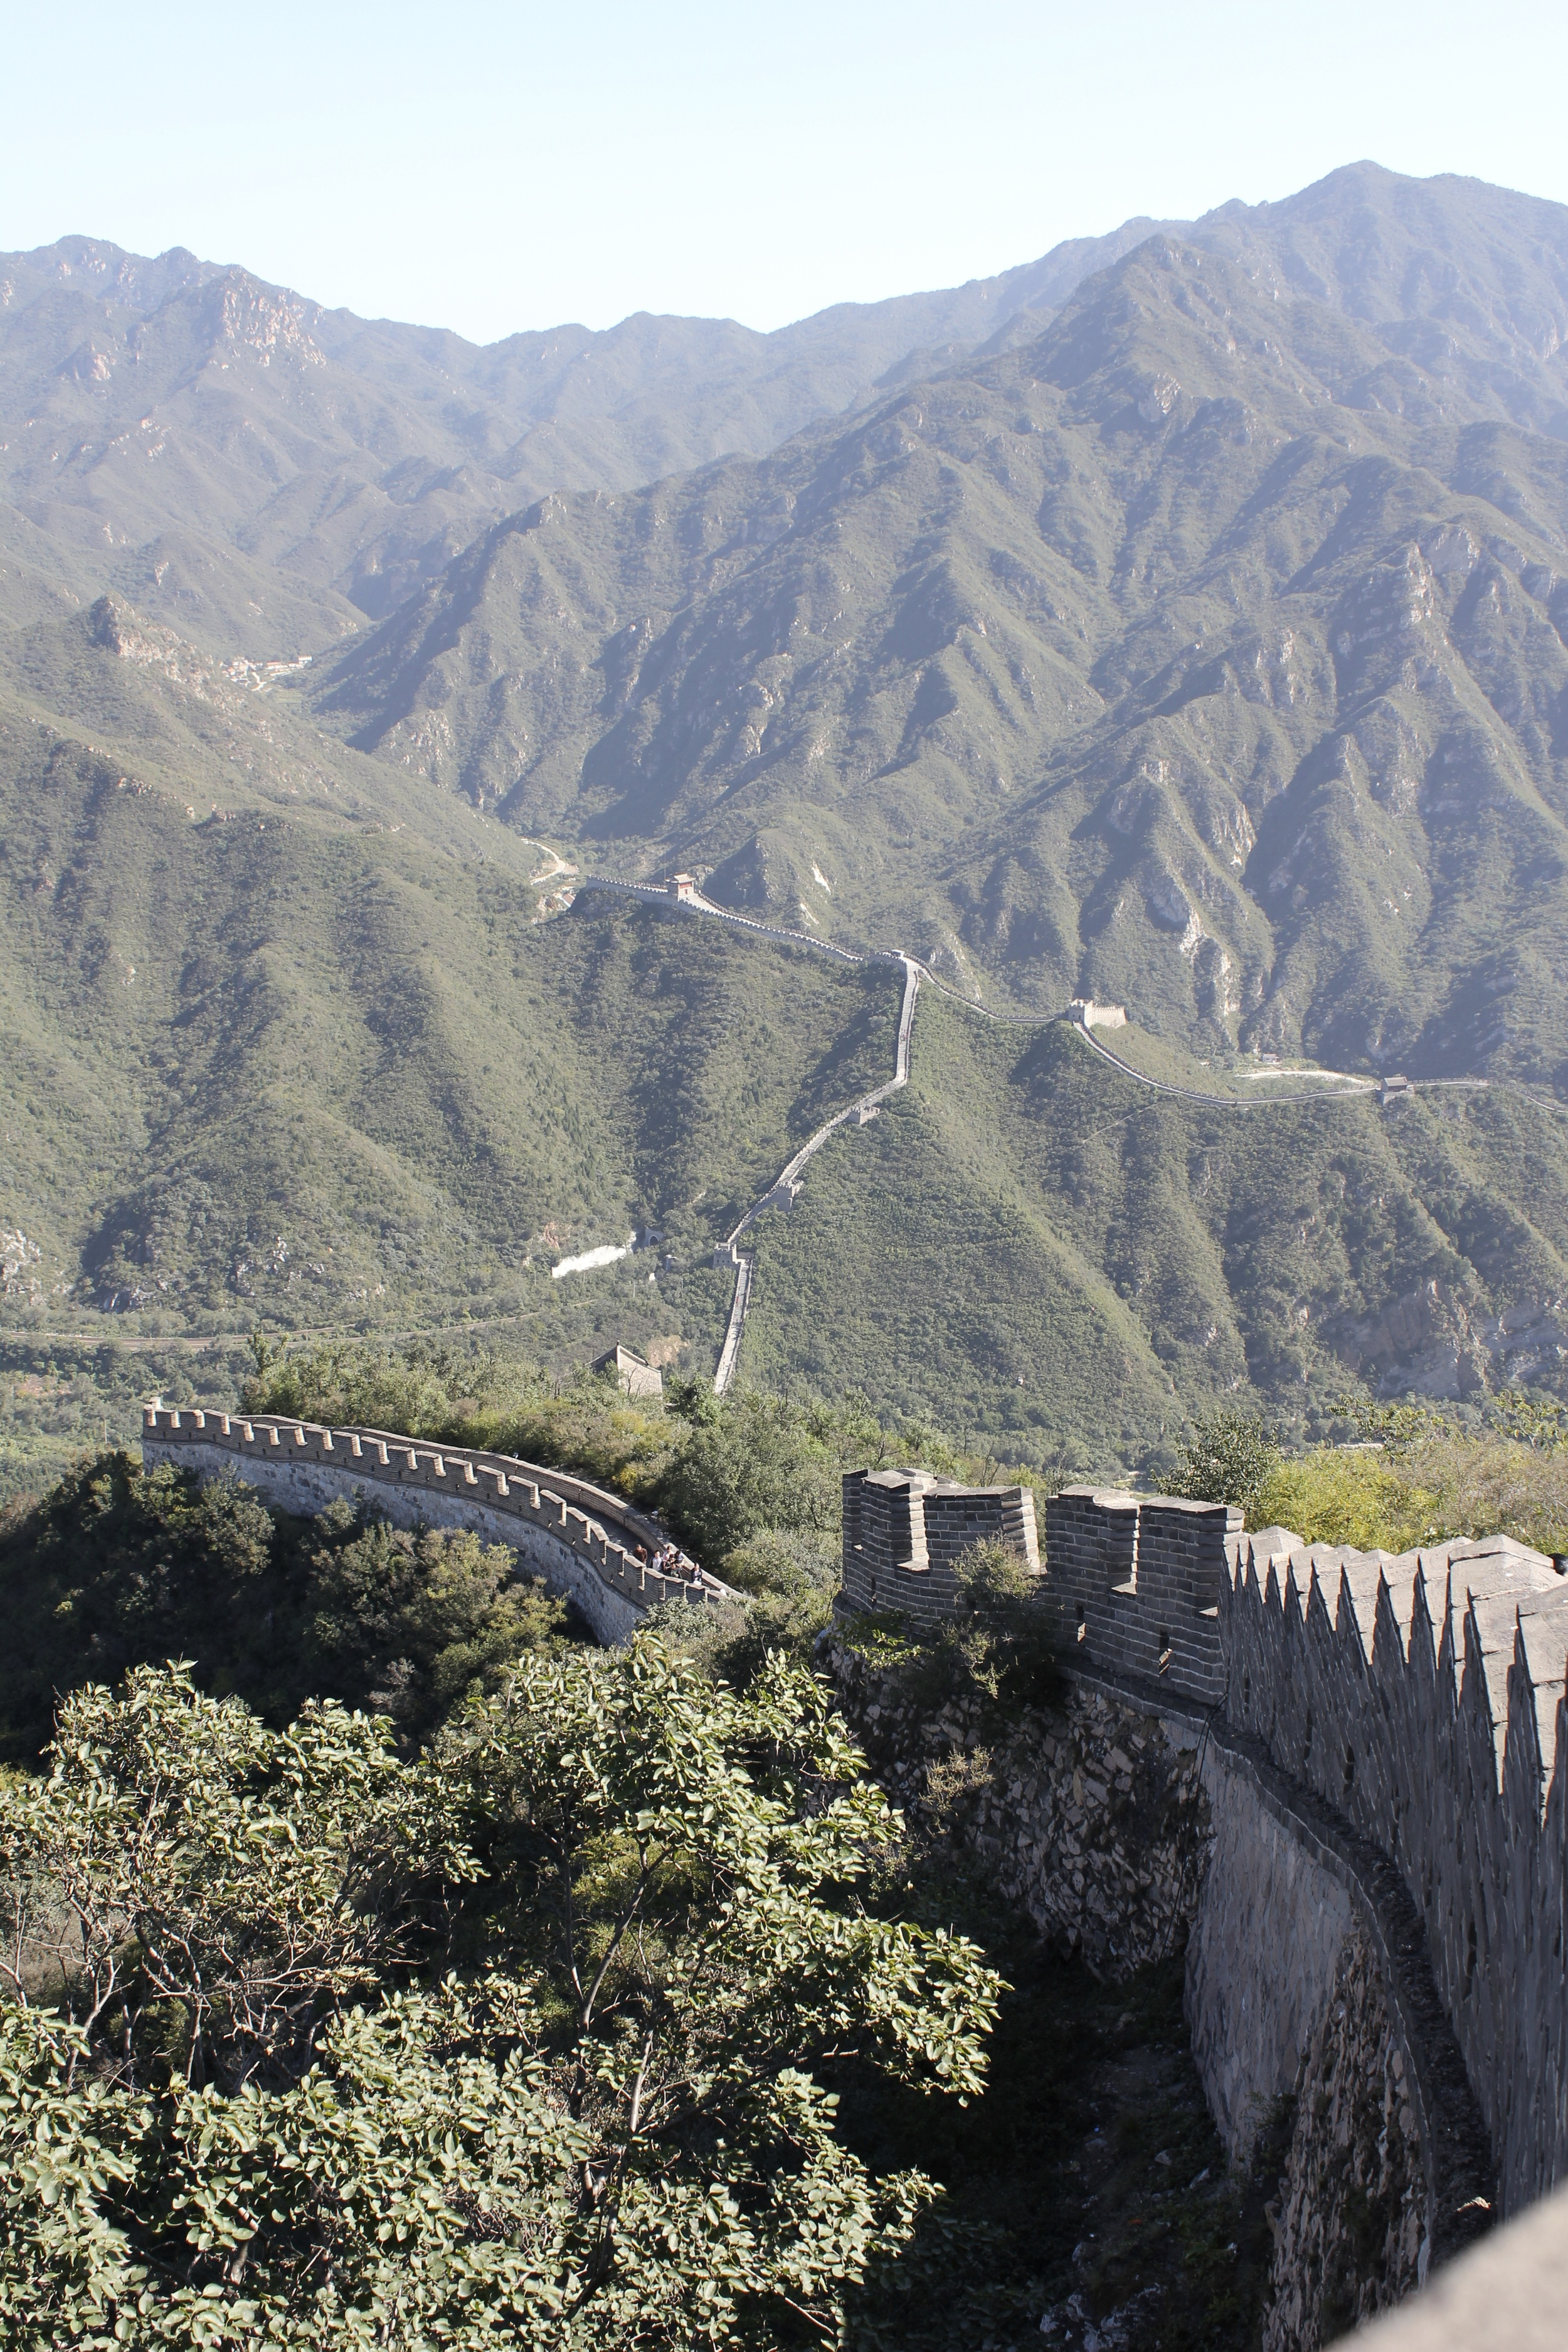 """Atop the Great Wall.                          0     false             18 pt     18 pt     0     0         false     false     false                                                          /* Style Definitions */ table.MsoNormalTable {mso-style-name:""""Table Normal""""; mso-tstyle-rowband-size:0; mso-tstyle-colband-size:0; mso-style-noshow:yes; mso-style-parent:""""""""; mso-padding-alt:0in 5.4pt 0in 5.4pt; mso-para-margin:0in; mso-para-margin-bottom:.0001pt; mso-pagination:widow-orphan; font-size:12.0pt; font-family:""""Times New Roman""""; mso-ascii-font-family:Cambria; mso-ascii-theme-font:minor-latin; mso-hansi-font-family:Cambria; mso-hansi-theme-font:minor-latin;}"""